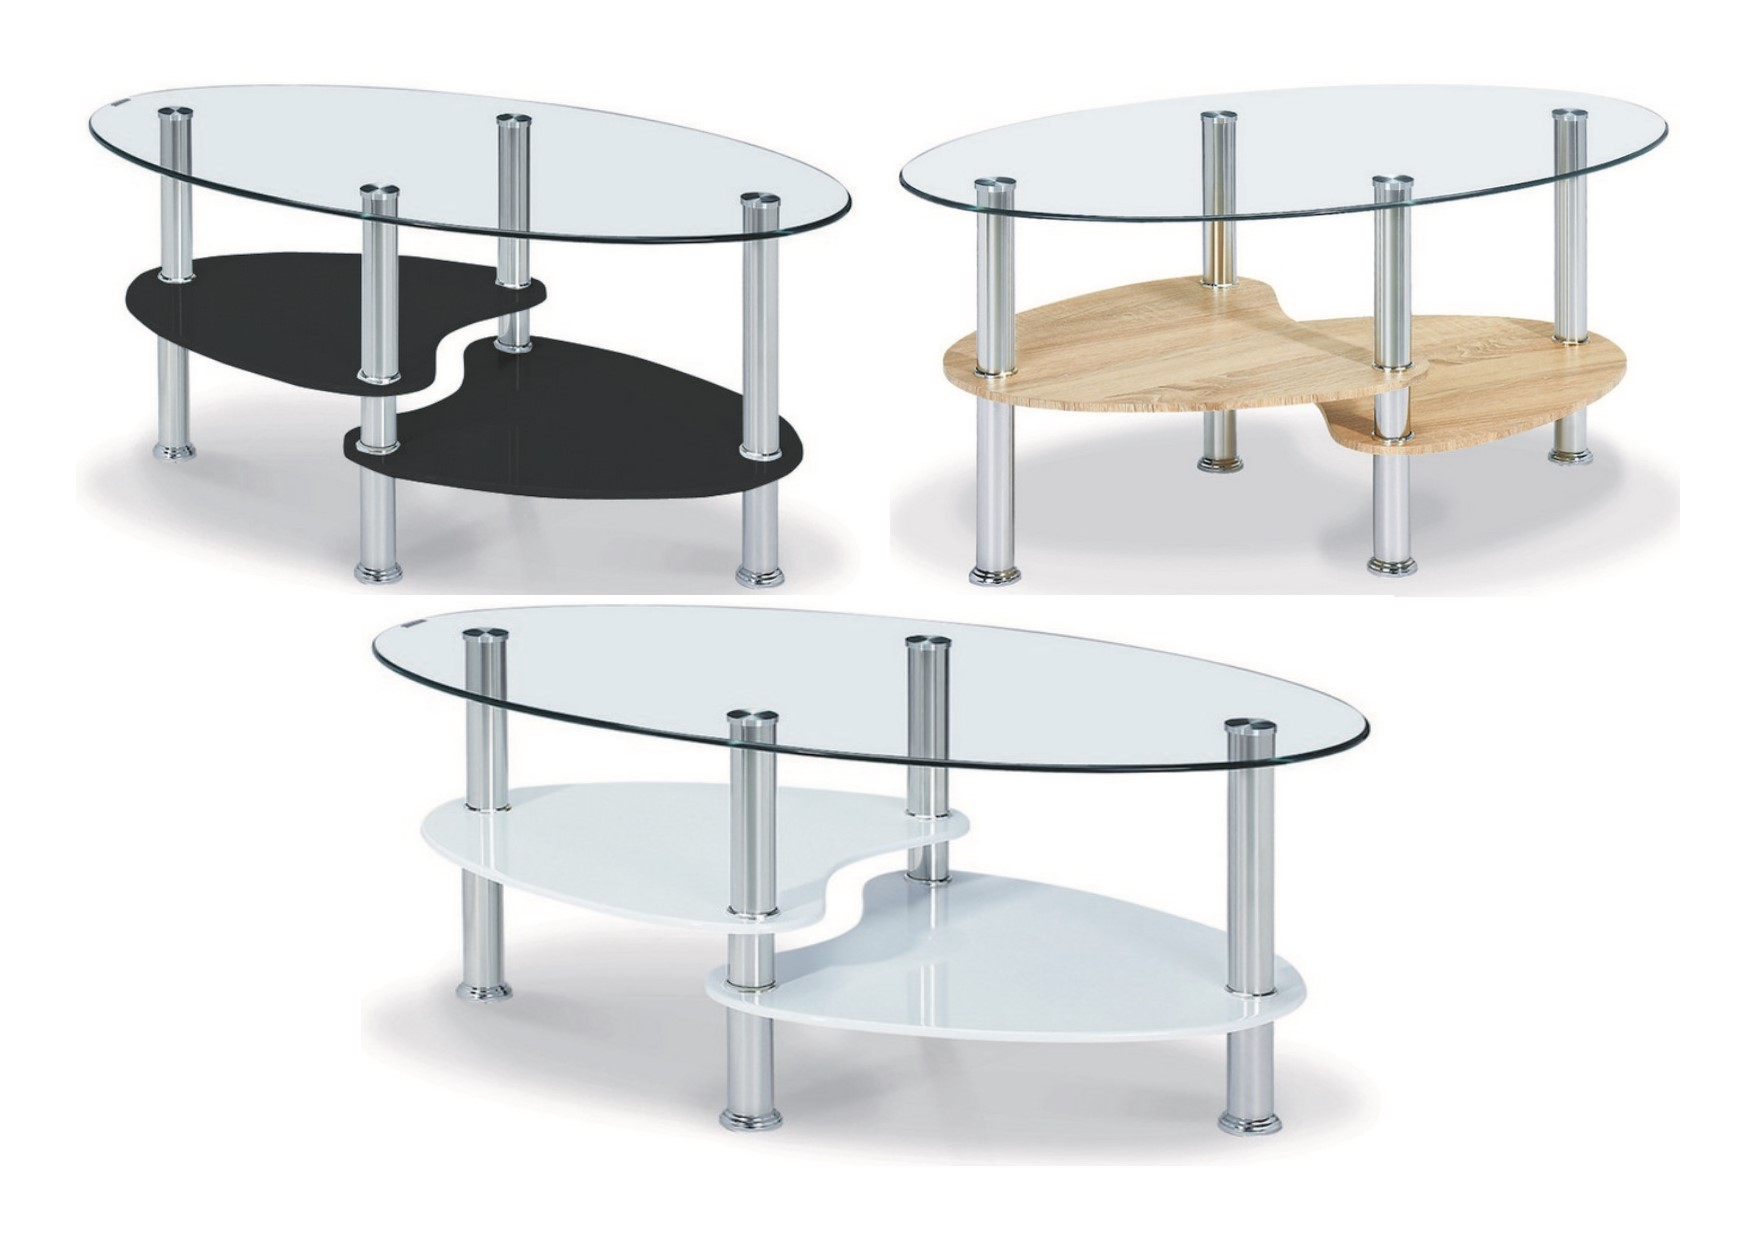 Oval Coffee Table With Shelf.Details About Heartlands Hurst Glass Oval Coffee Table 2 Shelves Black White Wood Effect